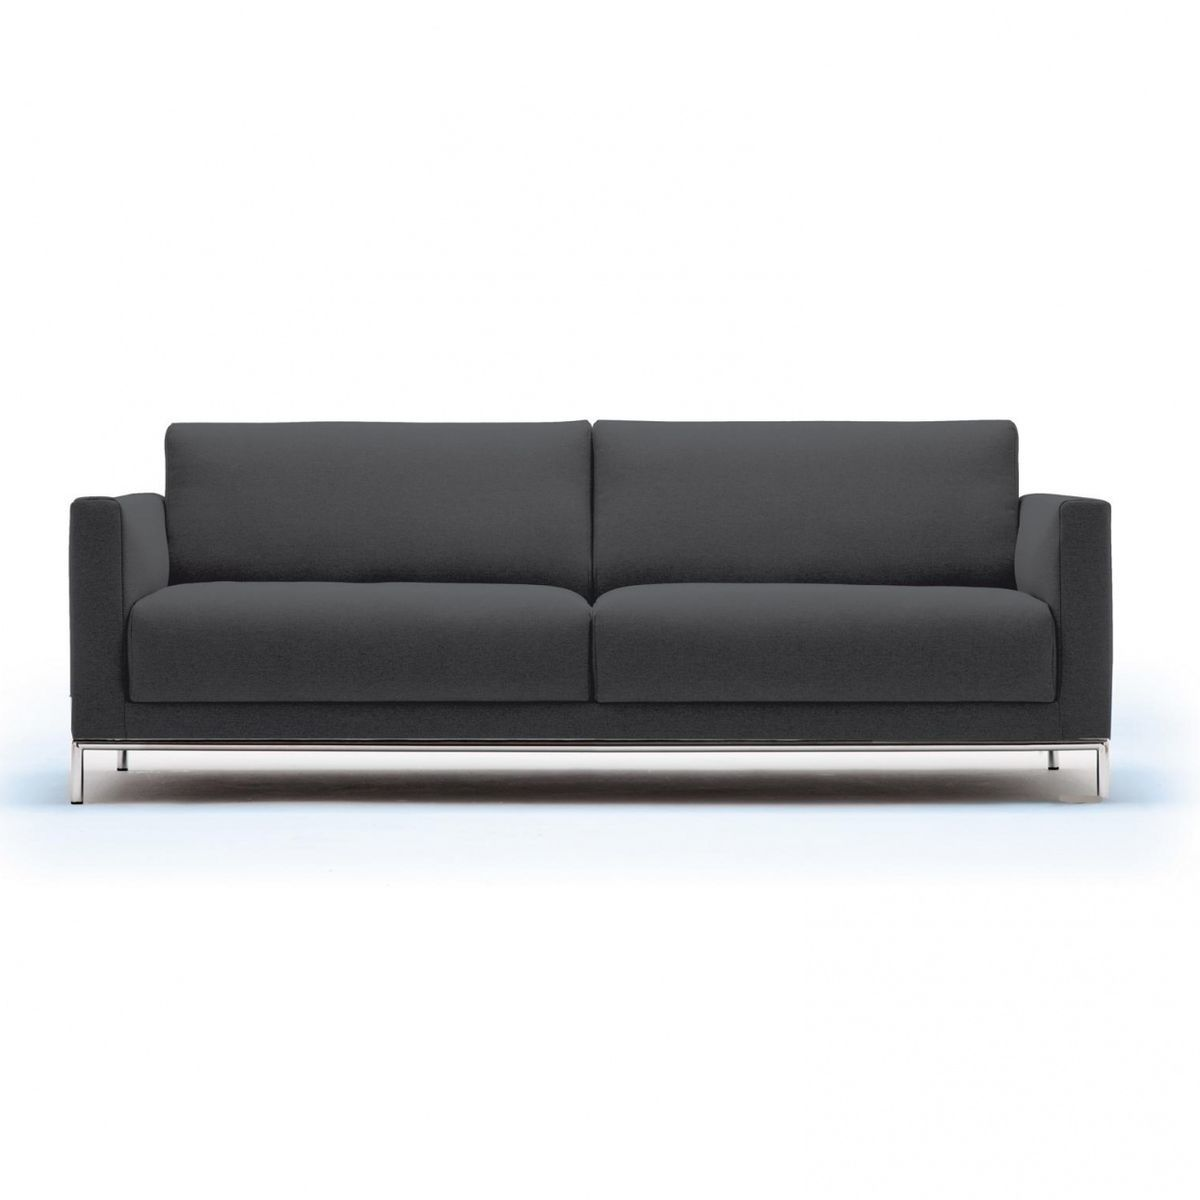 Freistil 141 3 seater sofa frame chrome freistil rolf for Sofa verstellbare sitztiefe